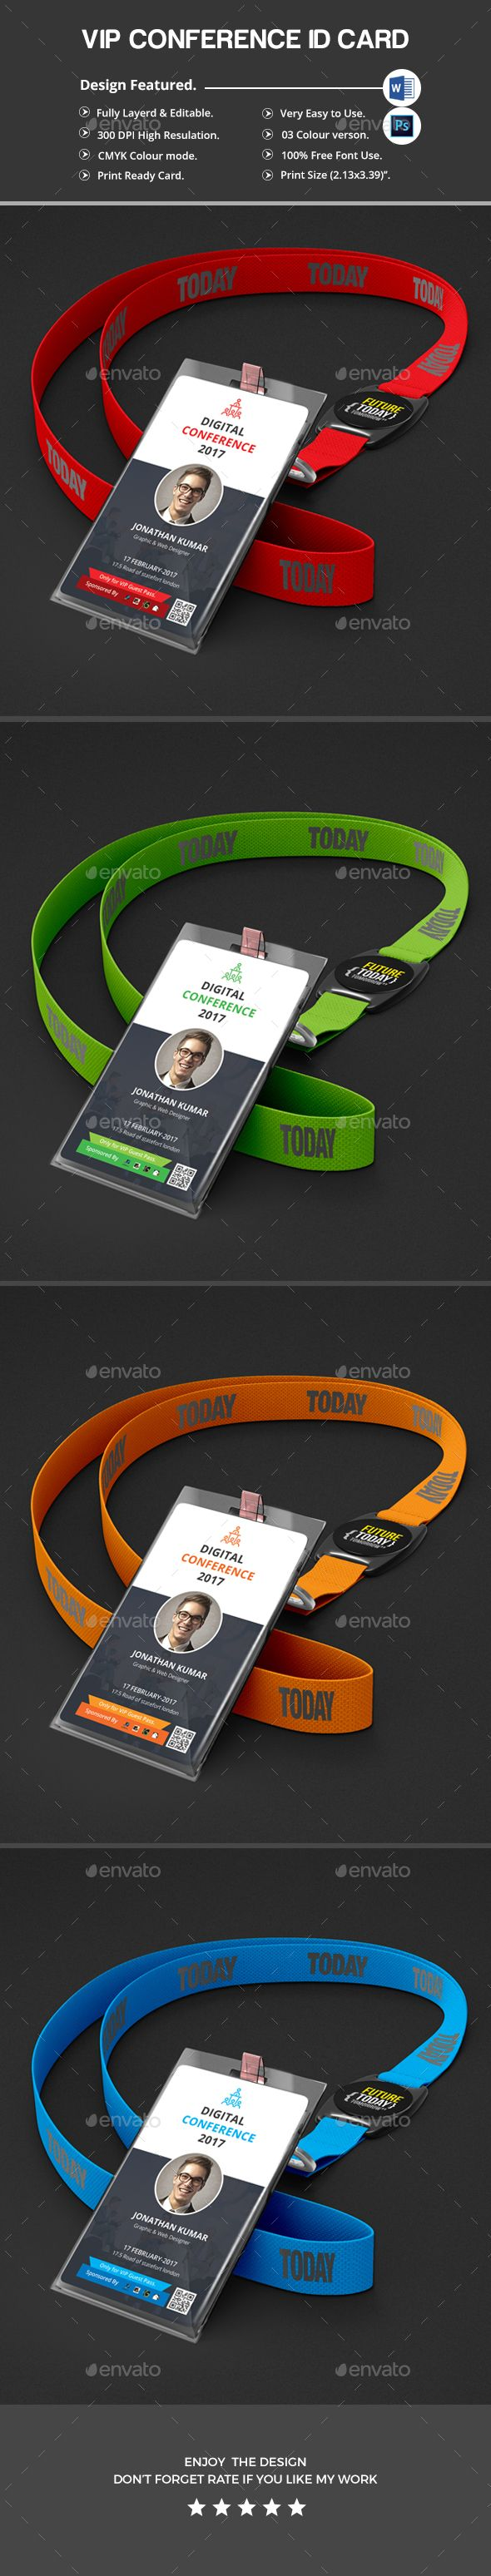 Conference VIP Pass #ID #Card - Miscellaneous Print #Templates Download here: https://graphicriver.net/item/conference-vip-pass-id-card/20177440?ref=alena994